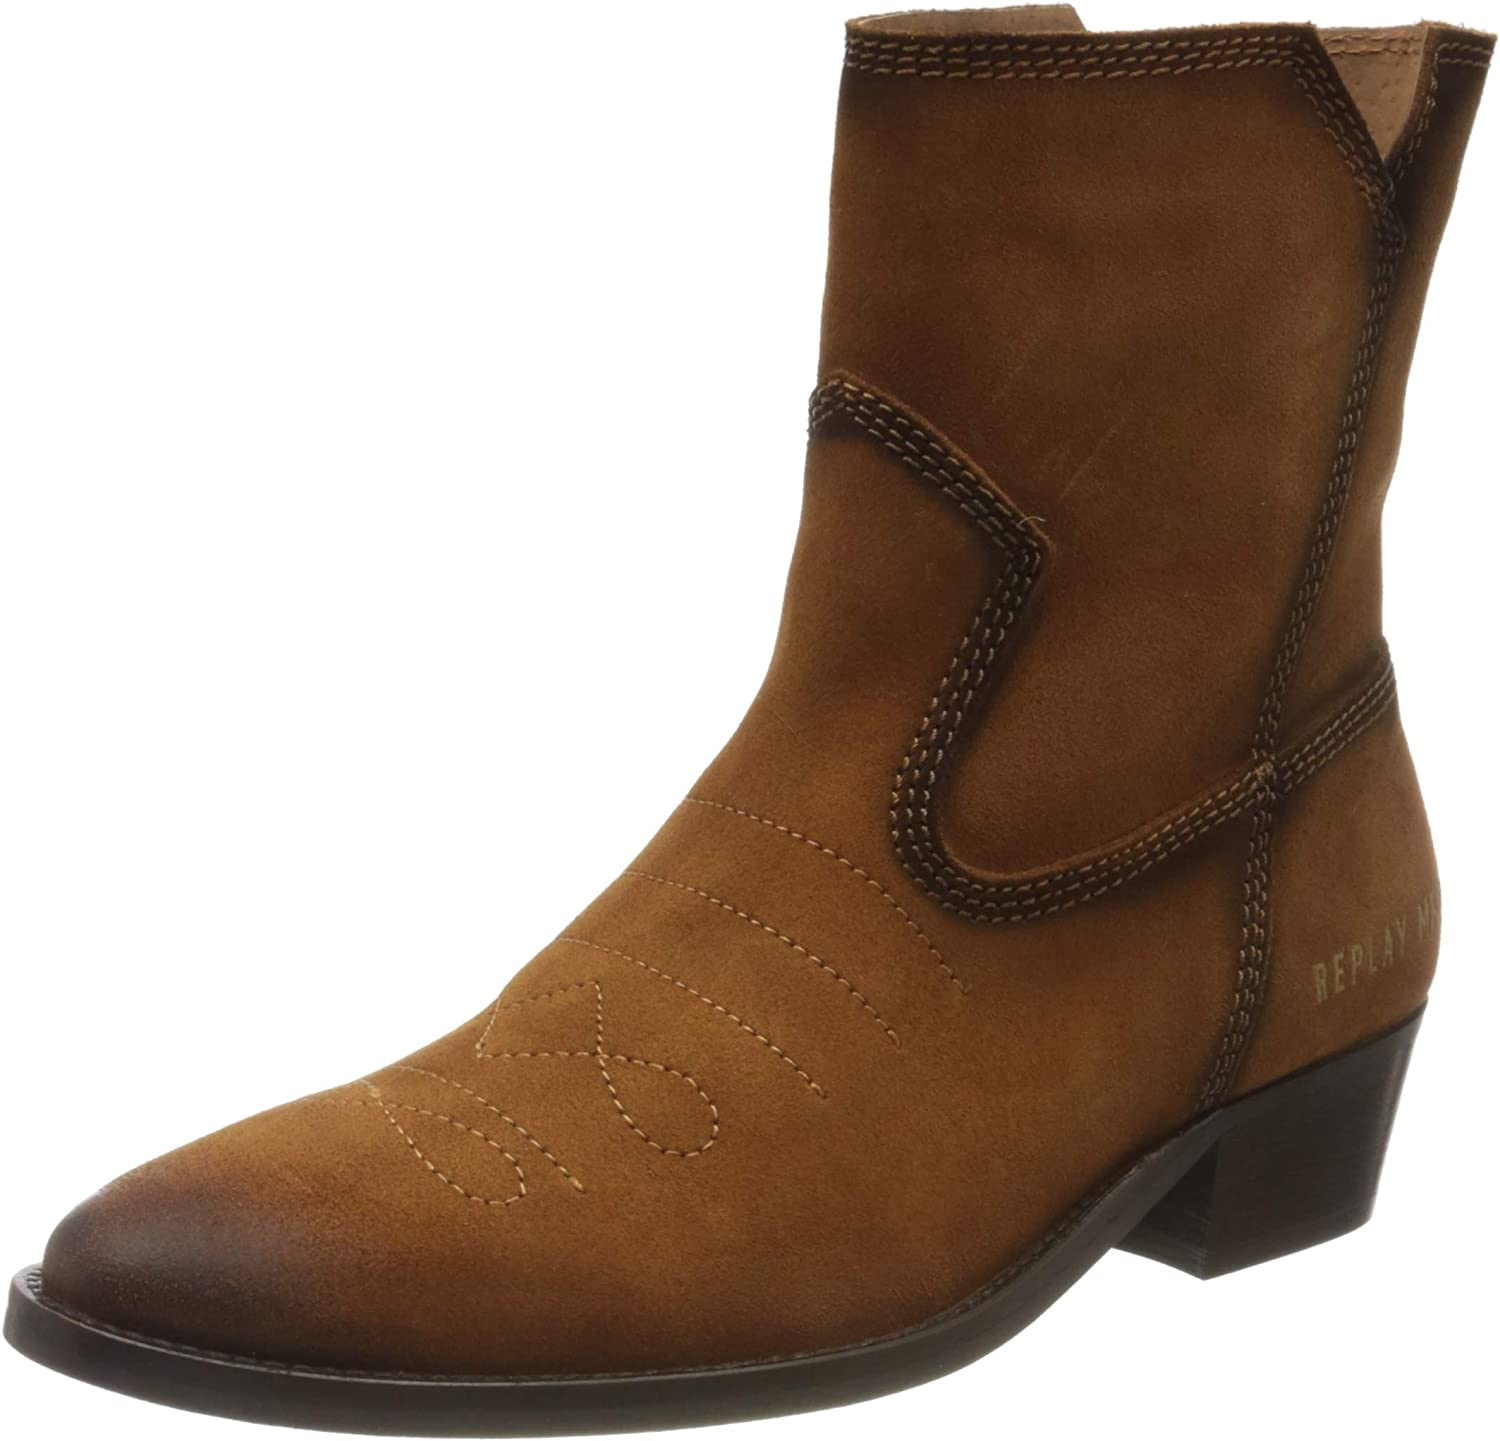 Replay Women's Safety and trust Boots Cowboy 35% OFF